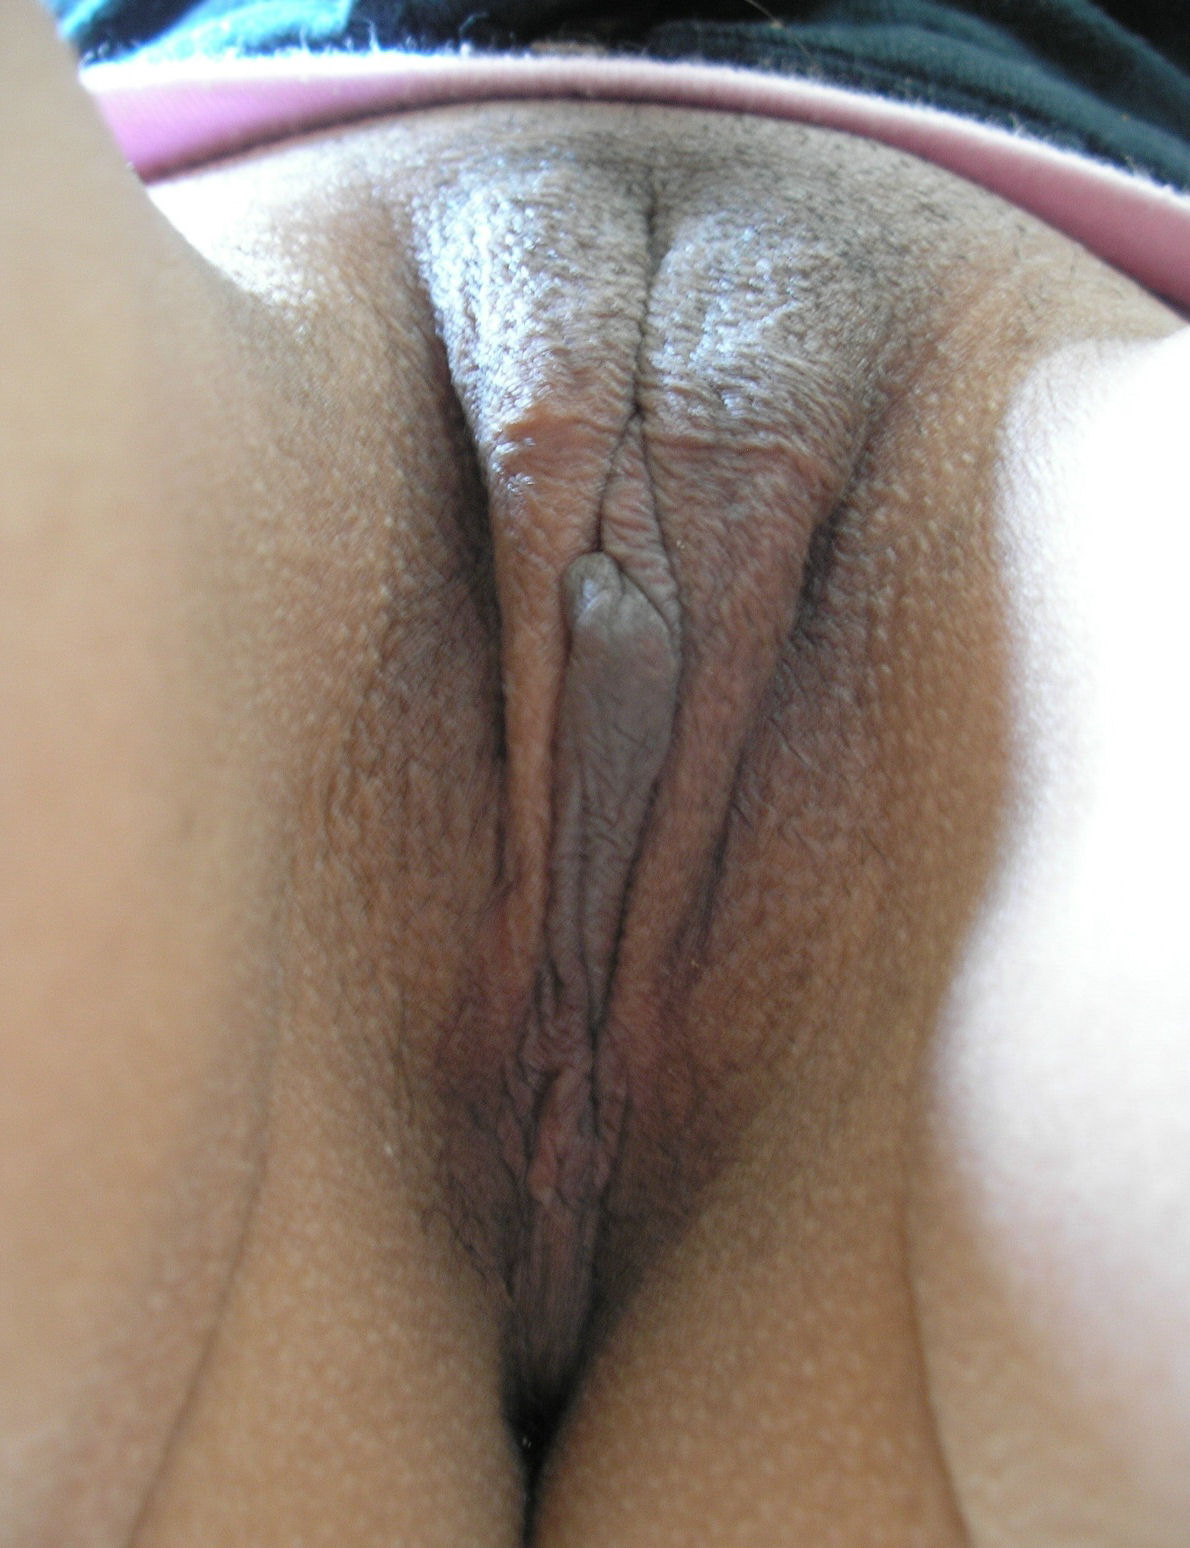 Latin girls hairy pussies